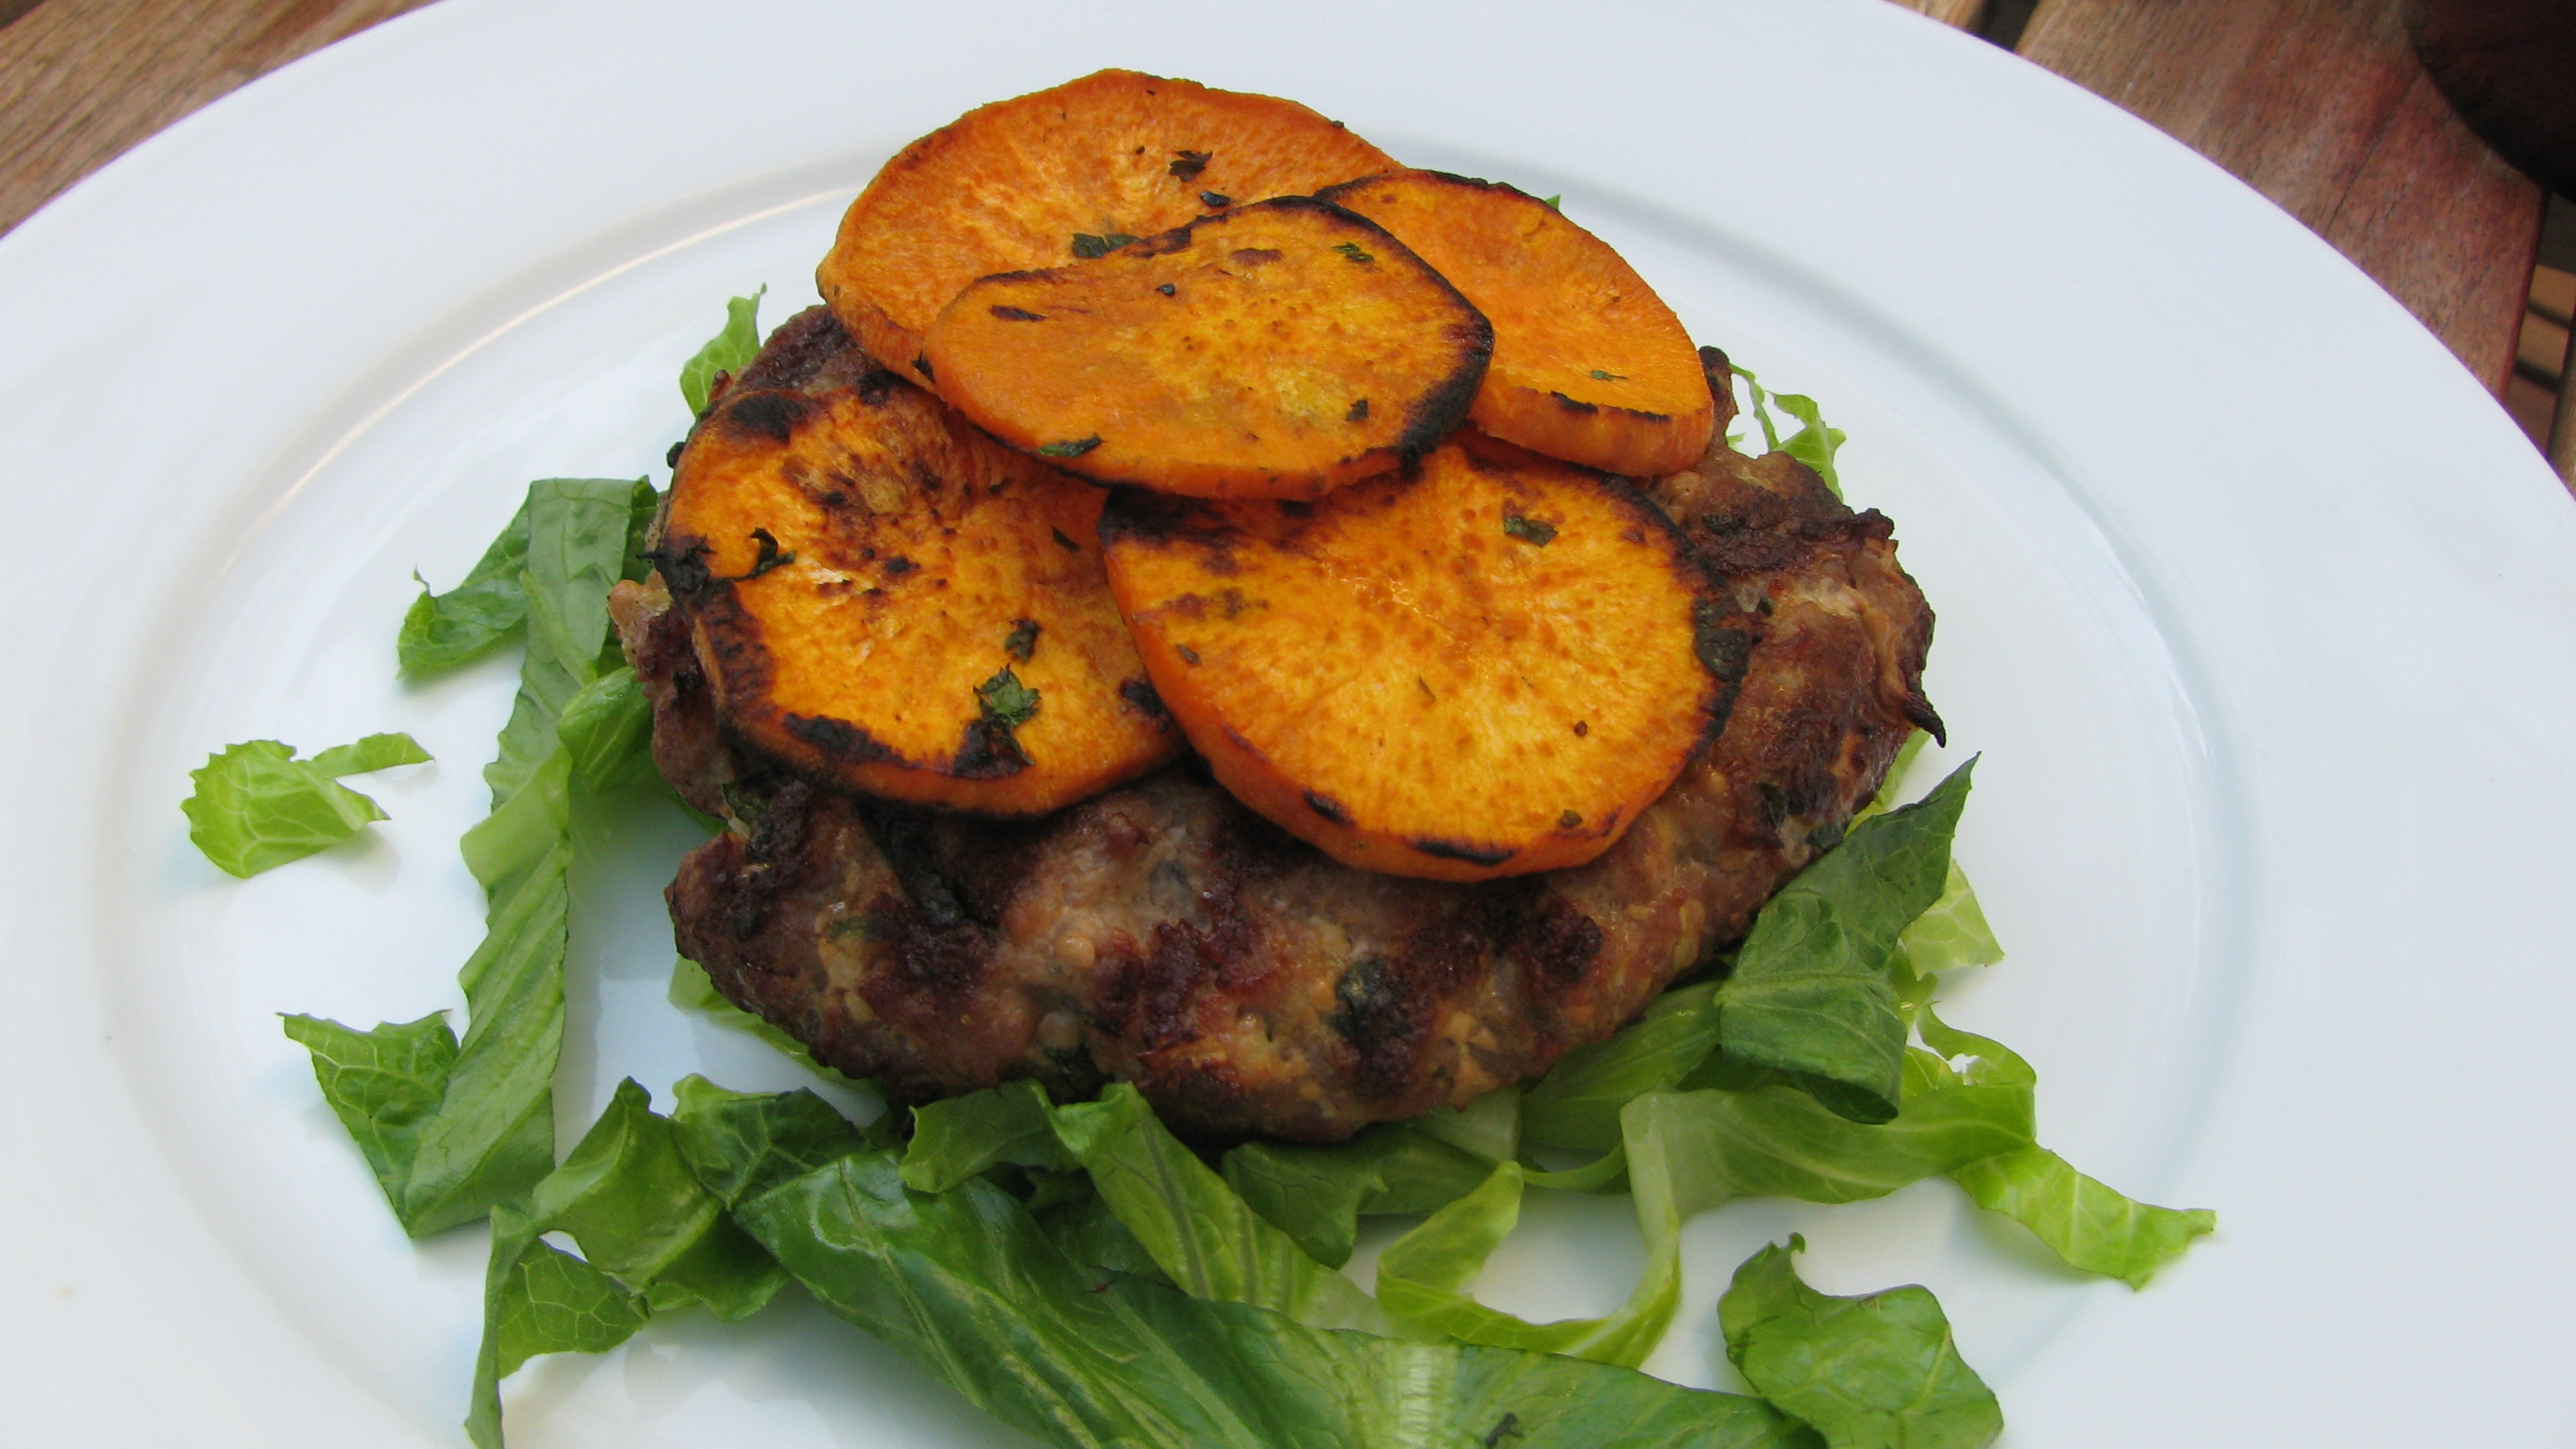 ... Pork Burgers w/ Cilantro-Lime Sweet Potatoes | The Paleo Periodical